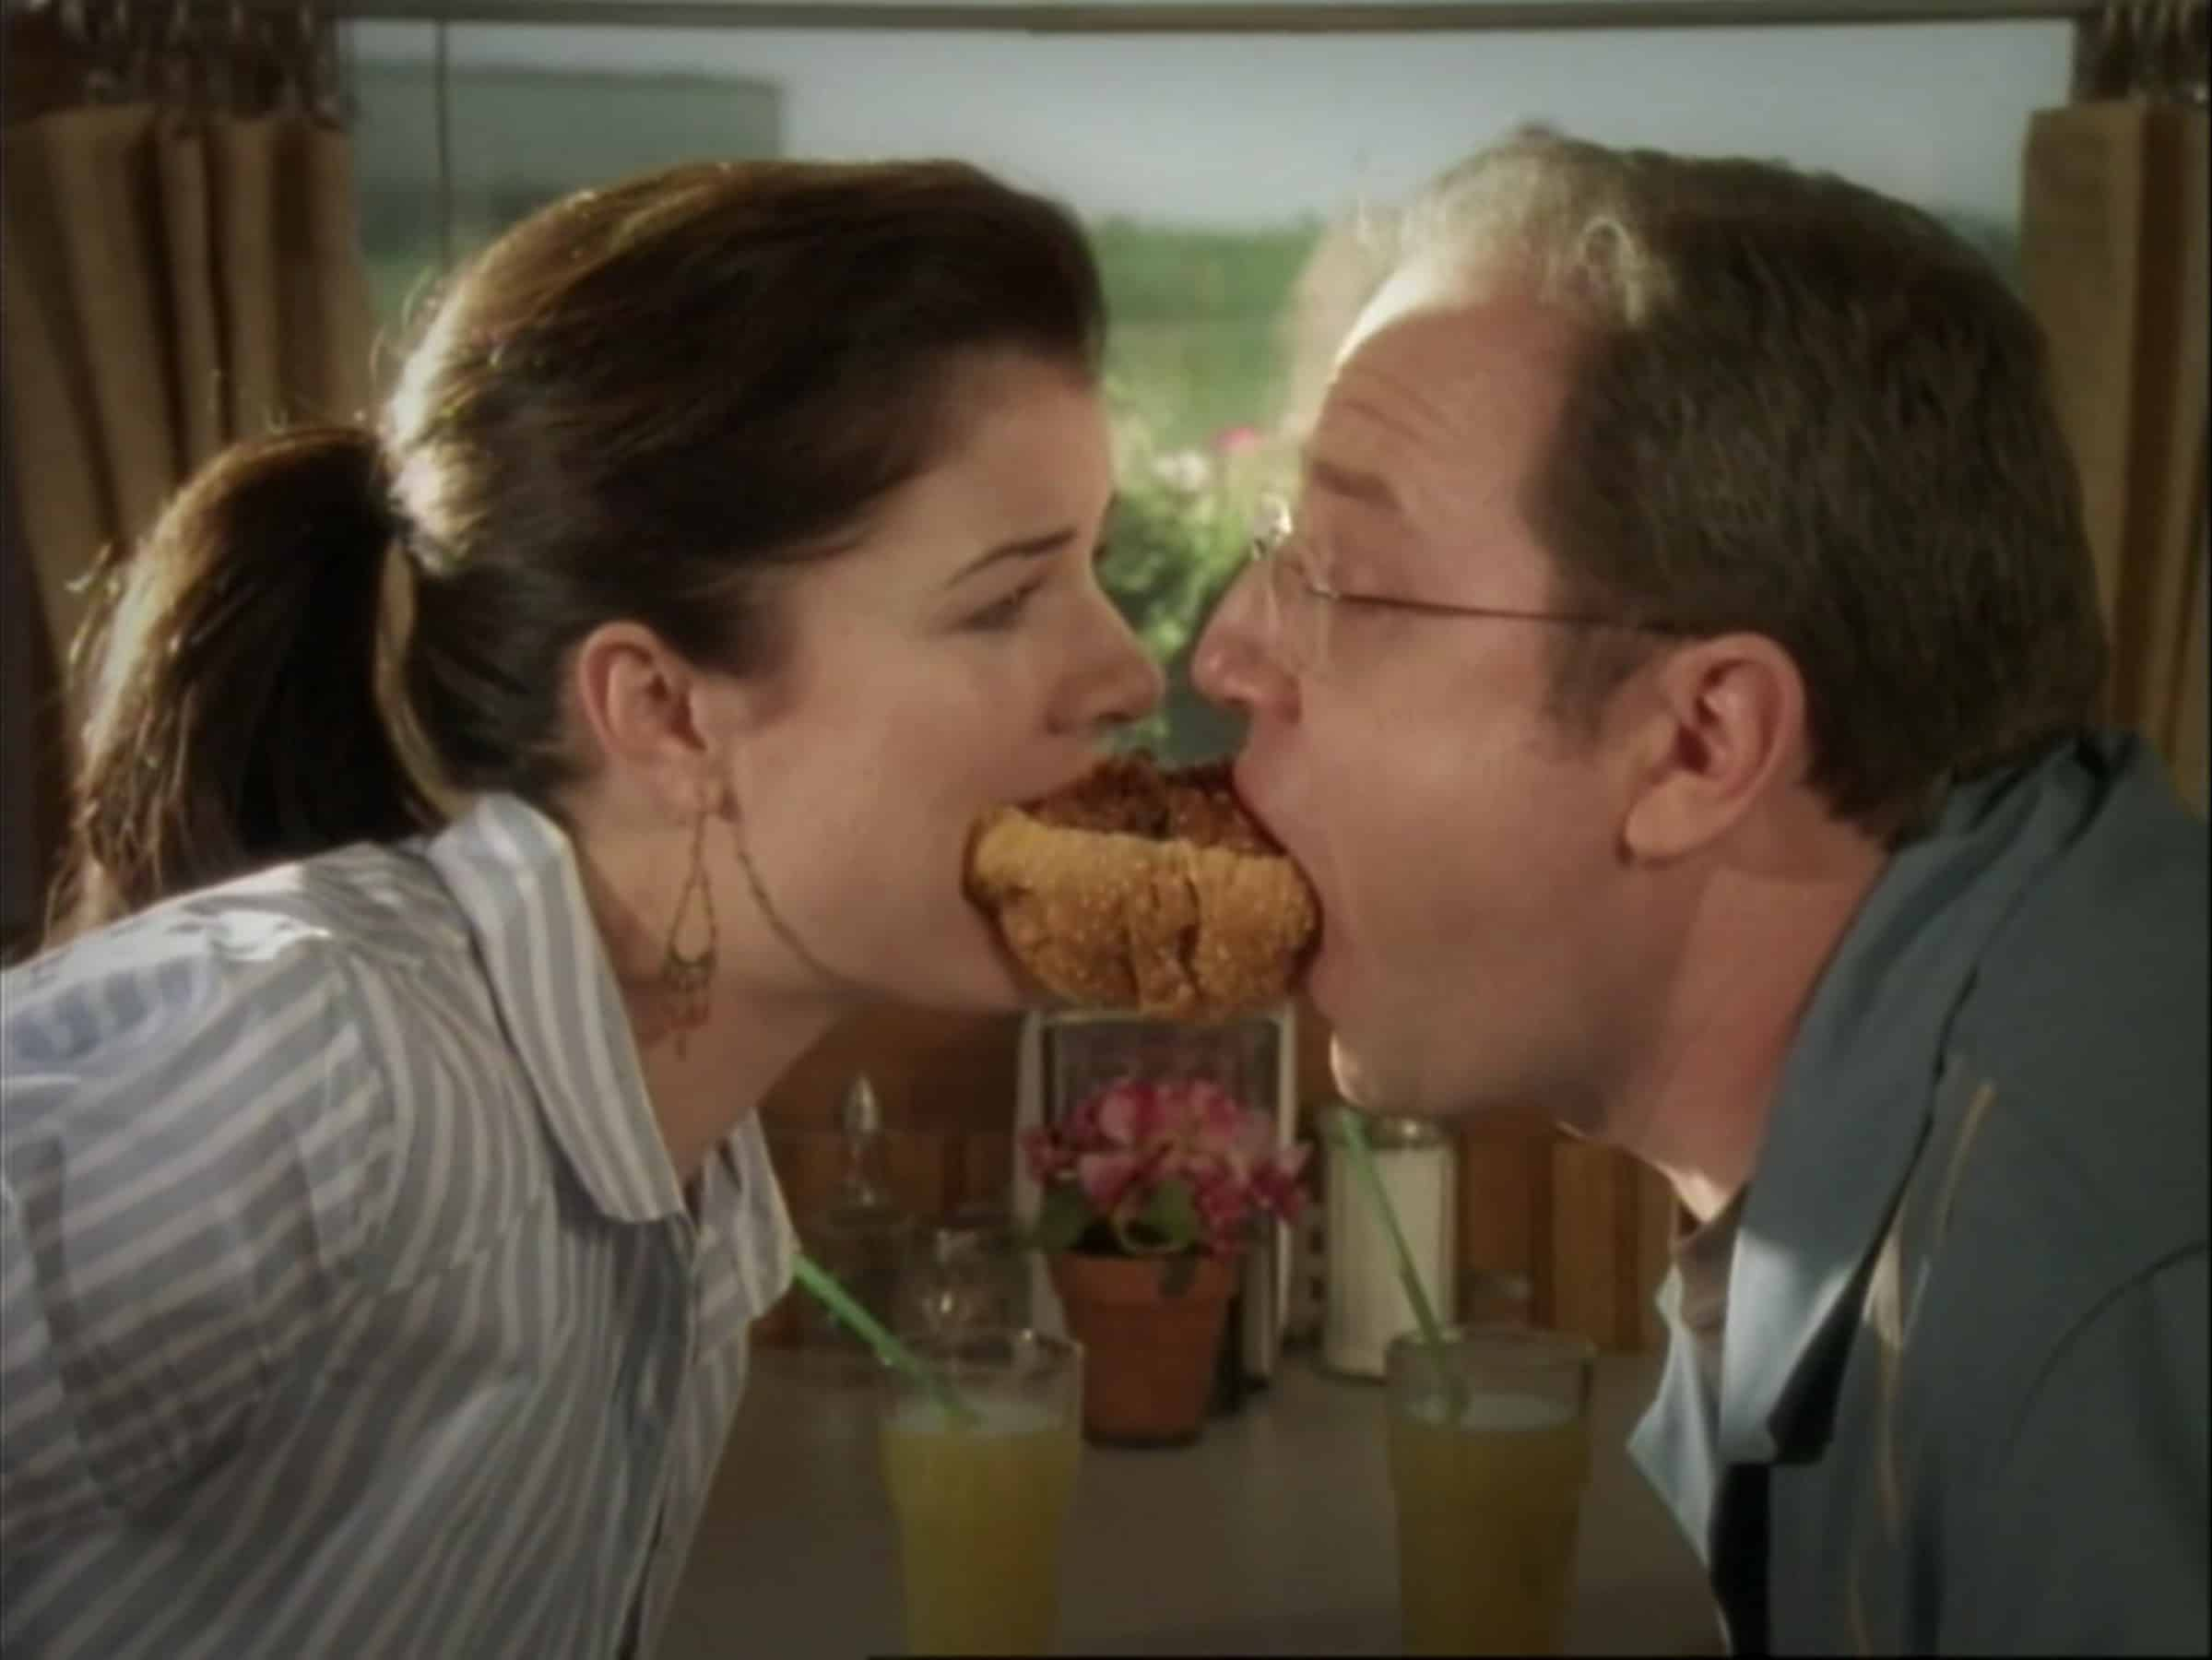 The closest Lacey & Brent come to kissing in an episode, is Brent daydreaming about this chili dog.